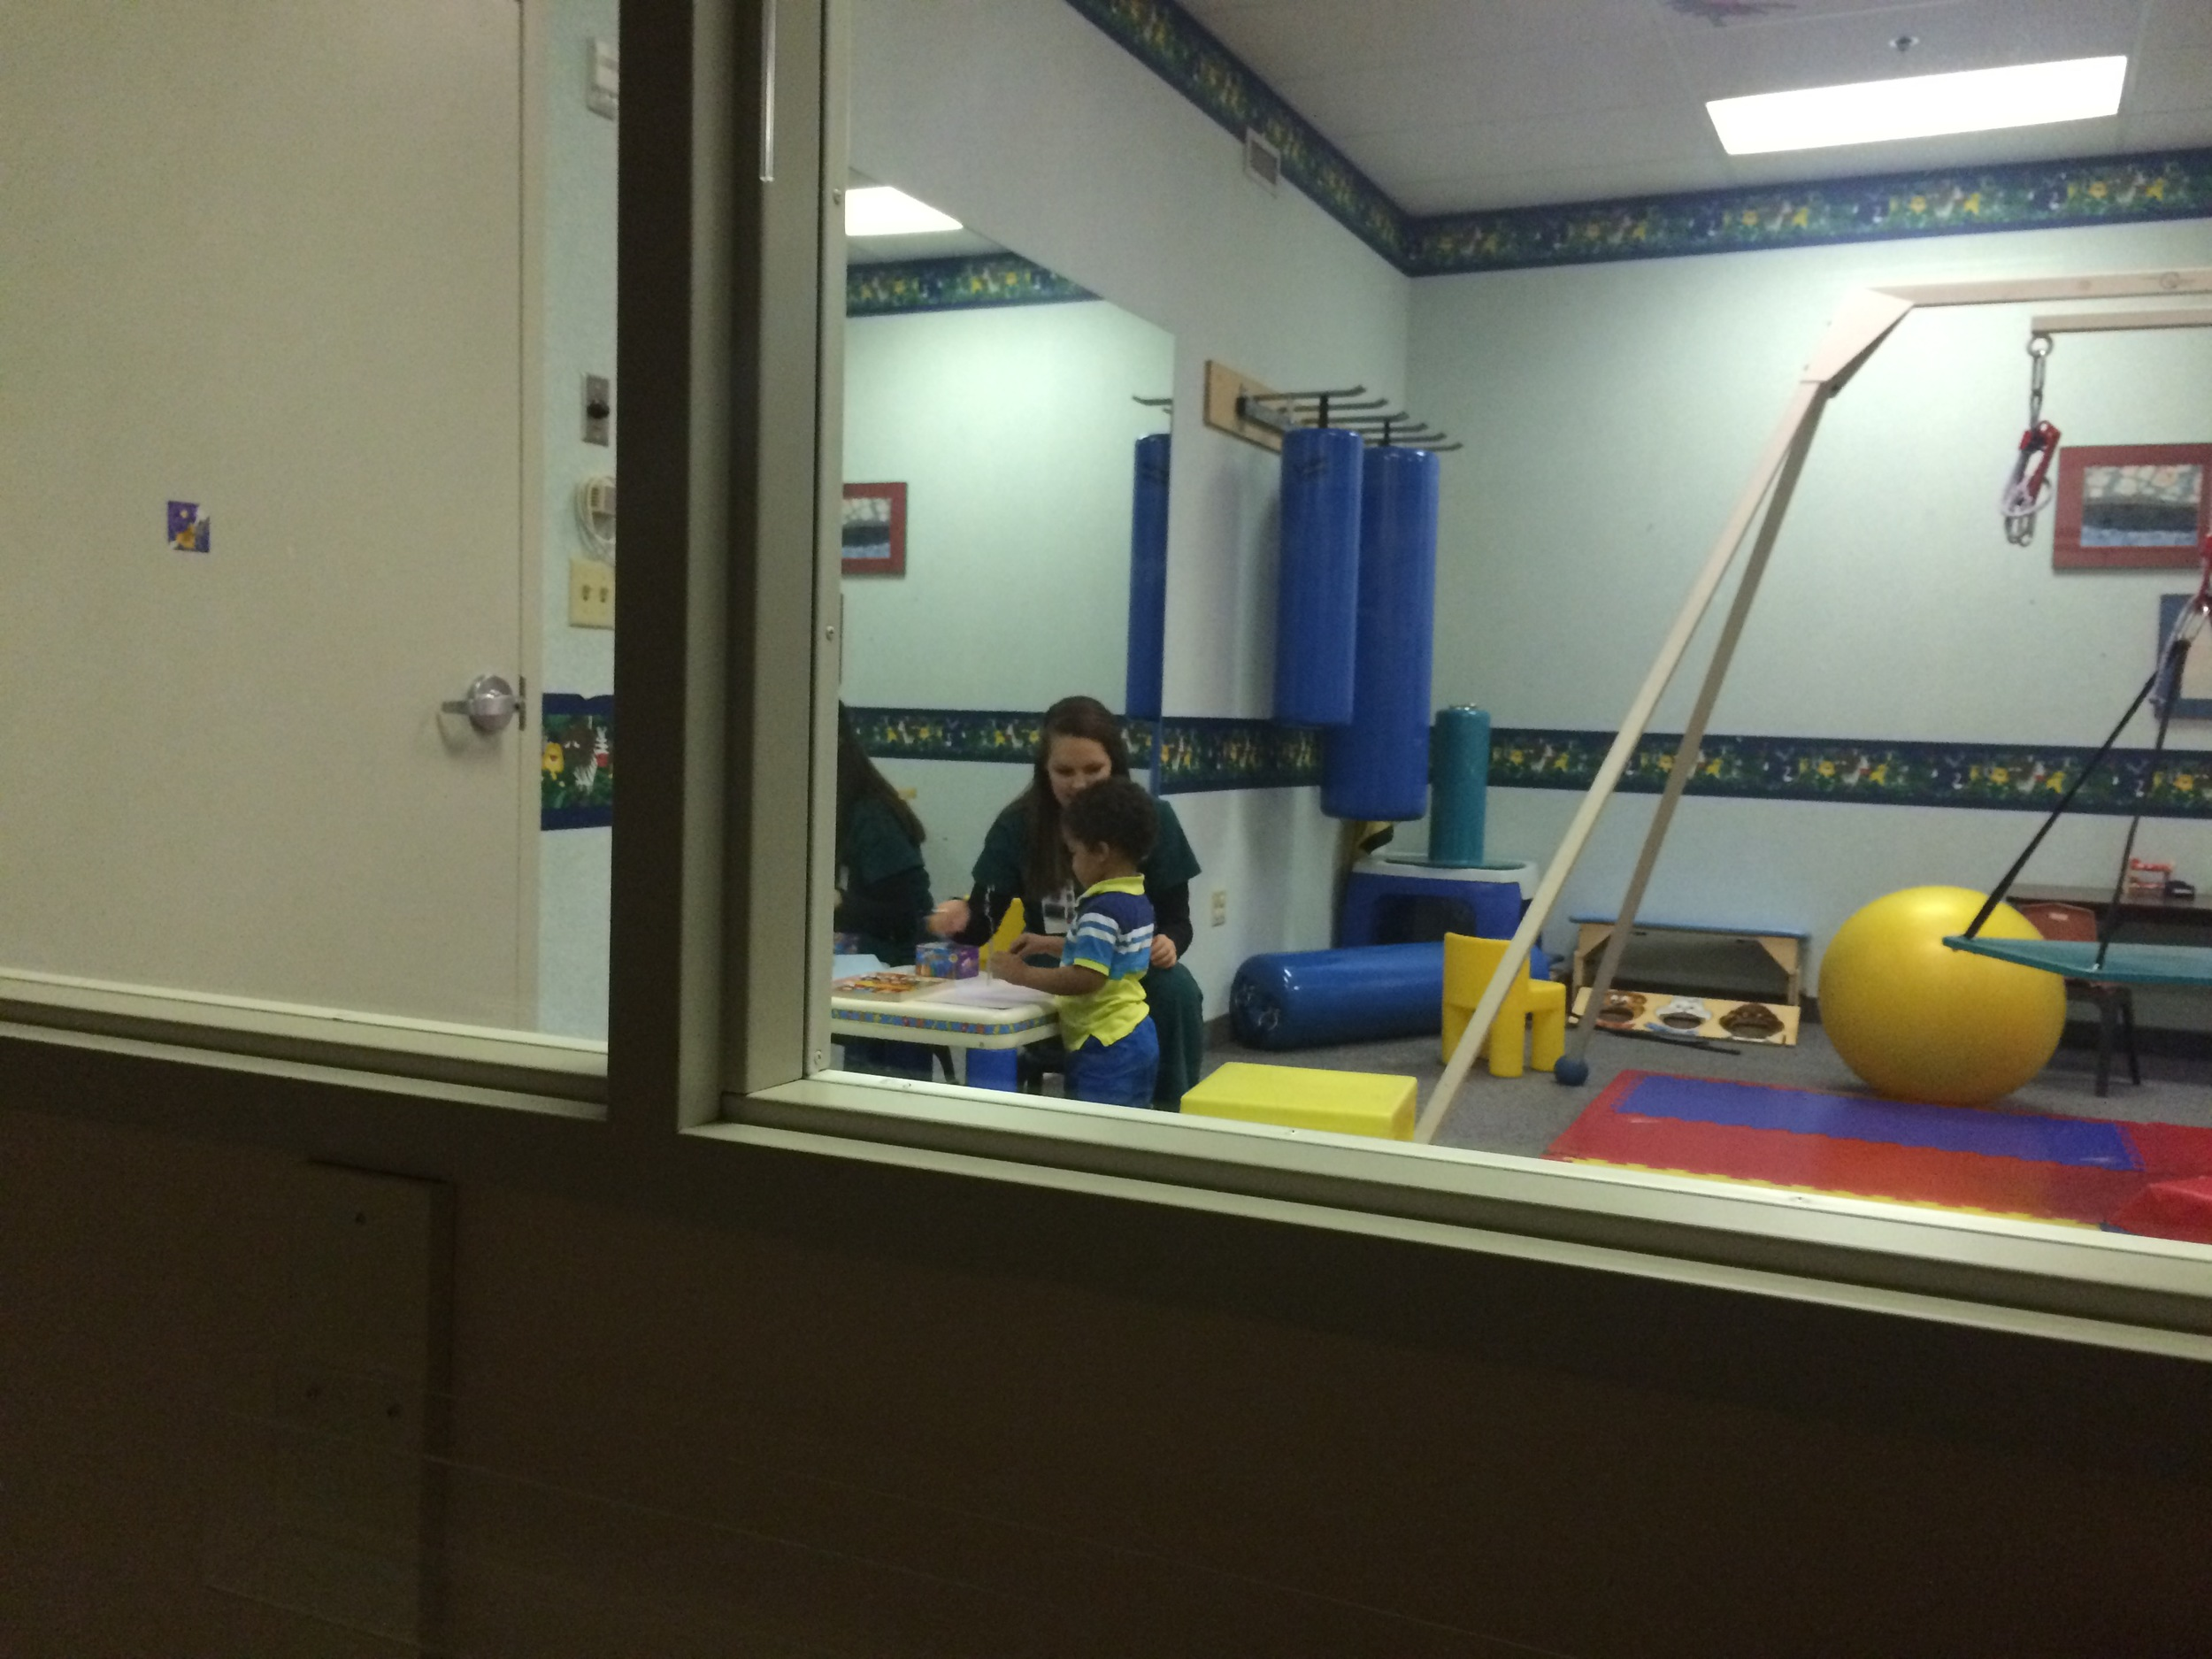 Day 414: I watch Elliott at speech therapy through a one-way mirror